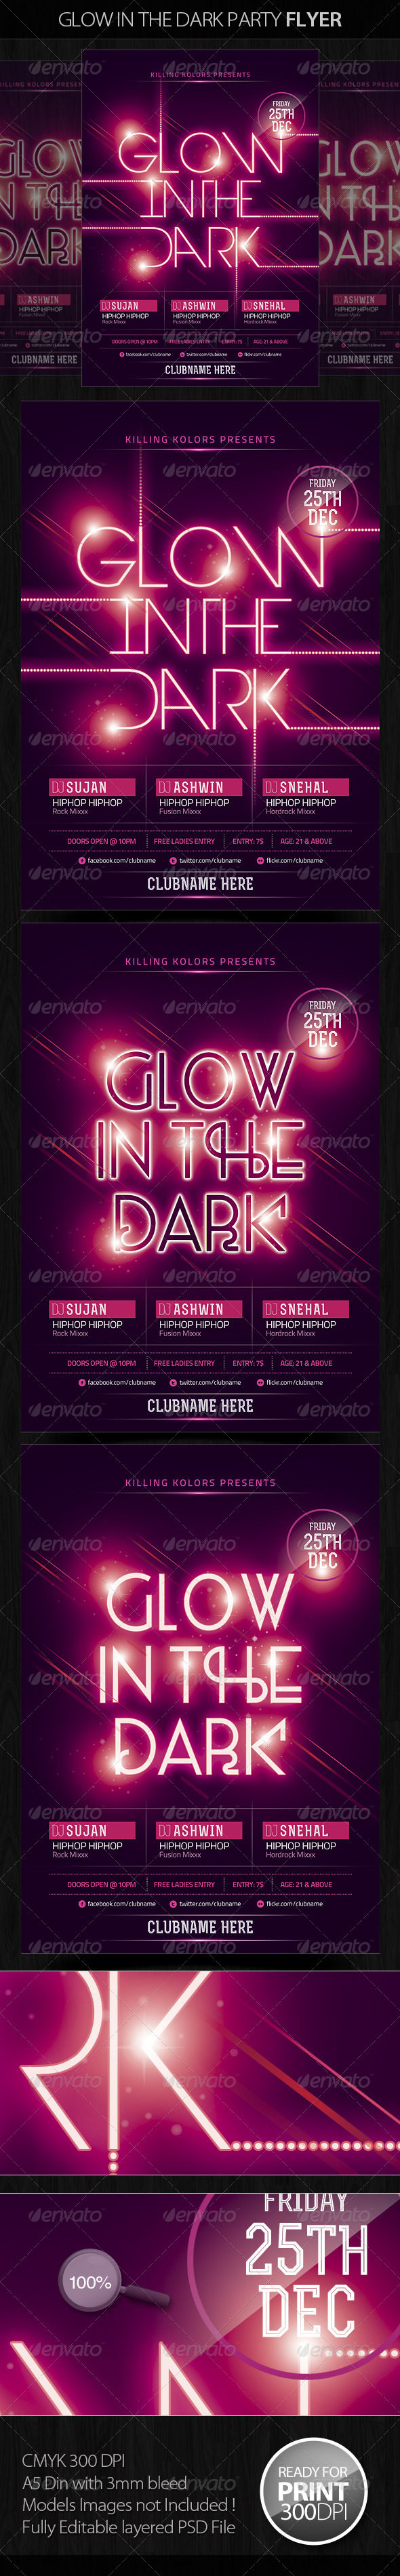 GraphicRiver Glow in the Dark Party Flyer 5060233